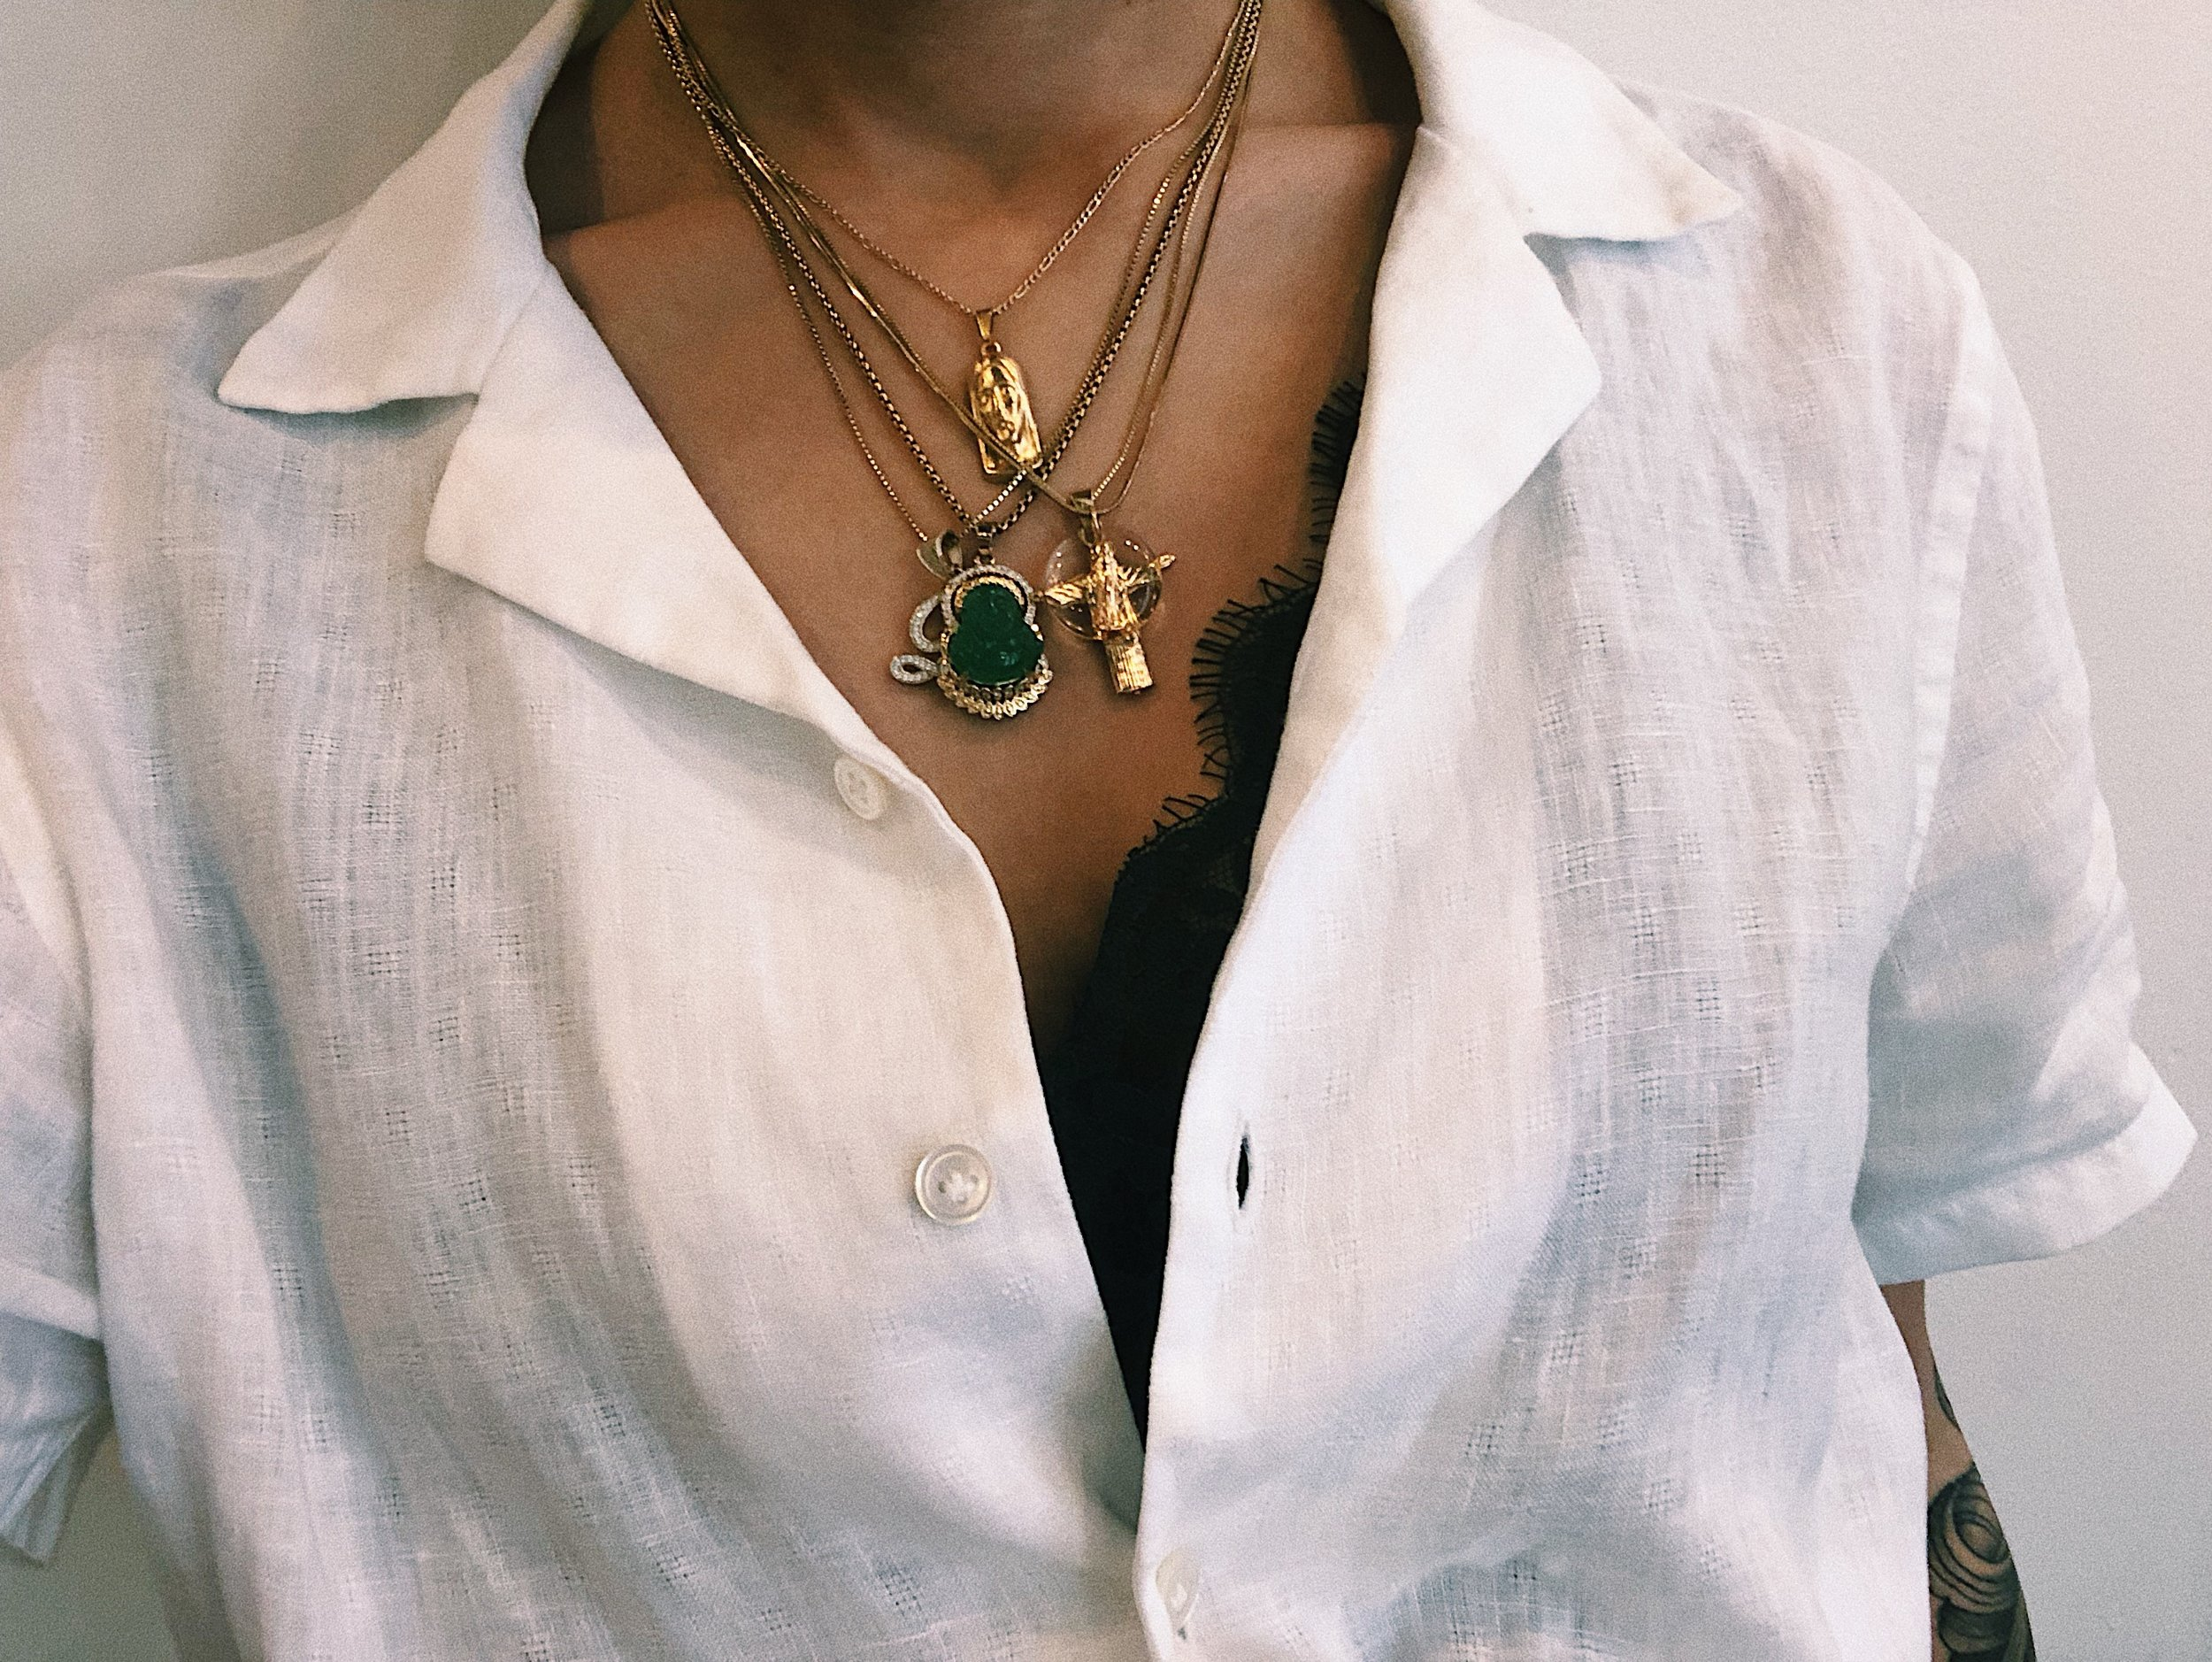 I absolutely LOVE layering my necklaces!